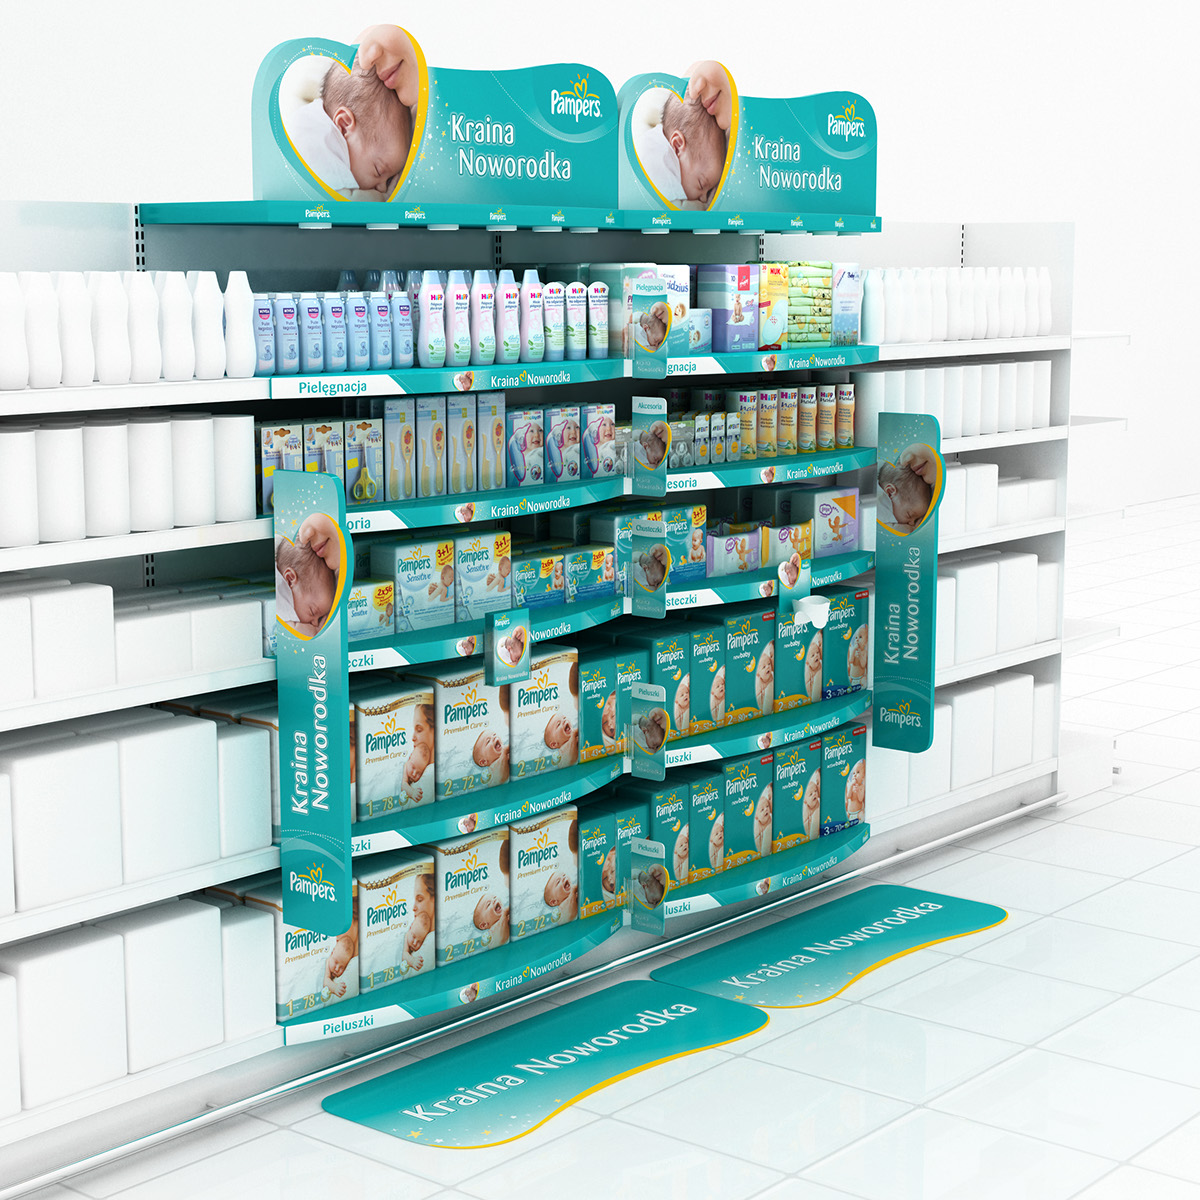 POS Visualisation For Pampers, P&G On Behance